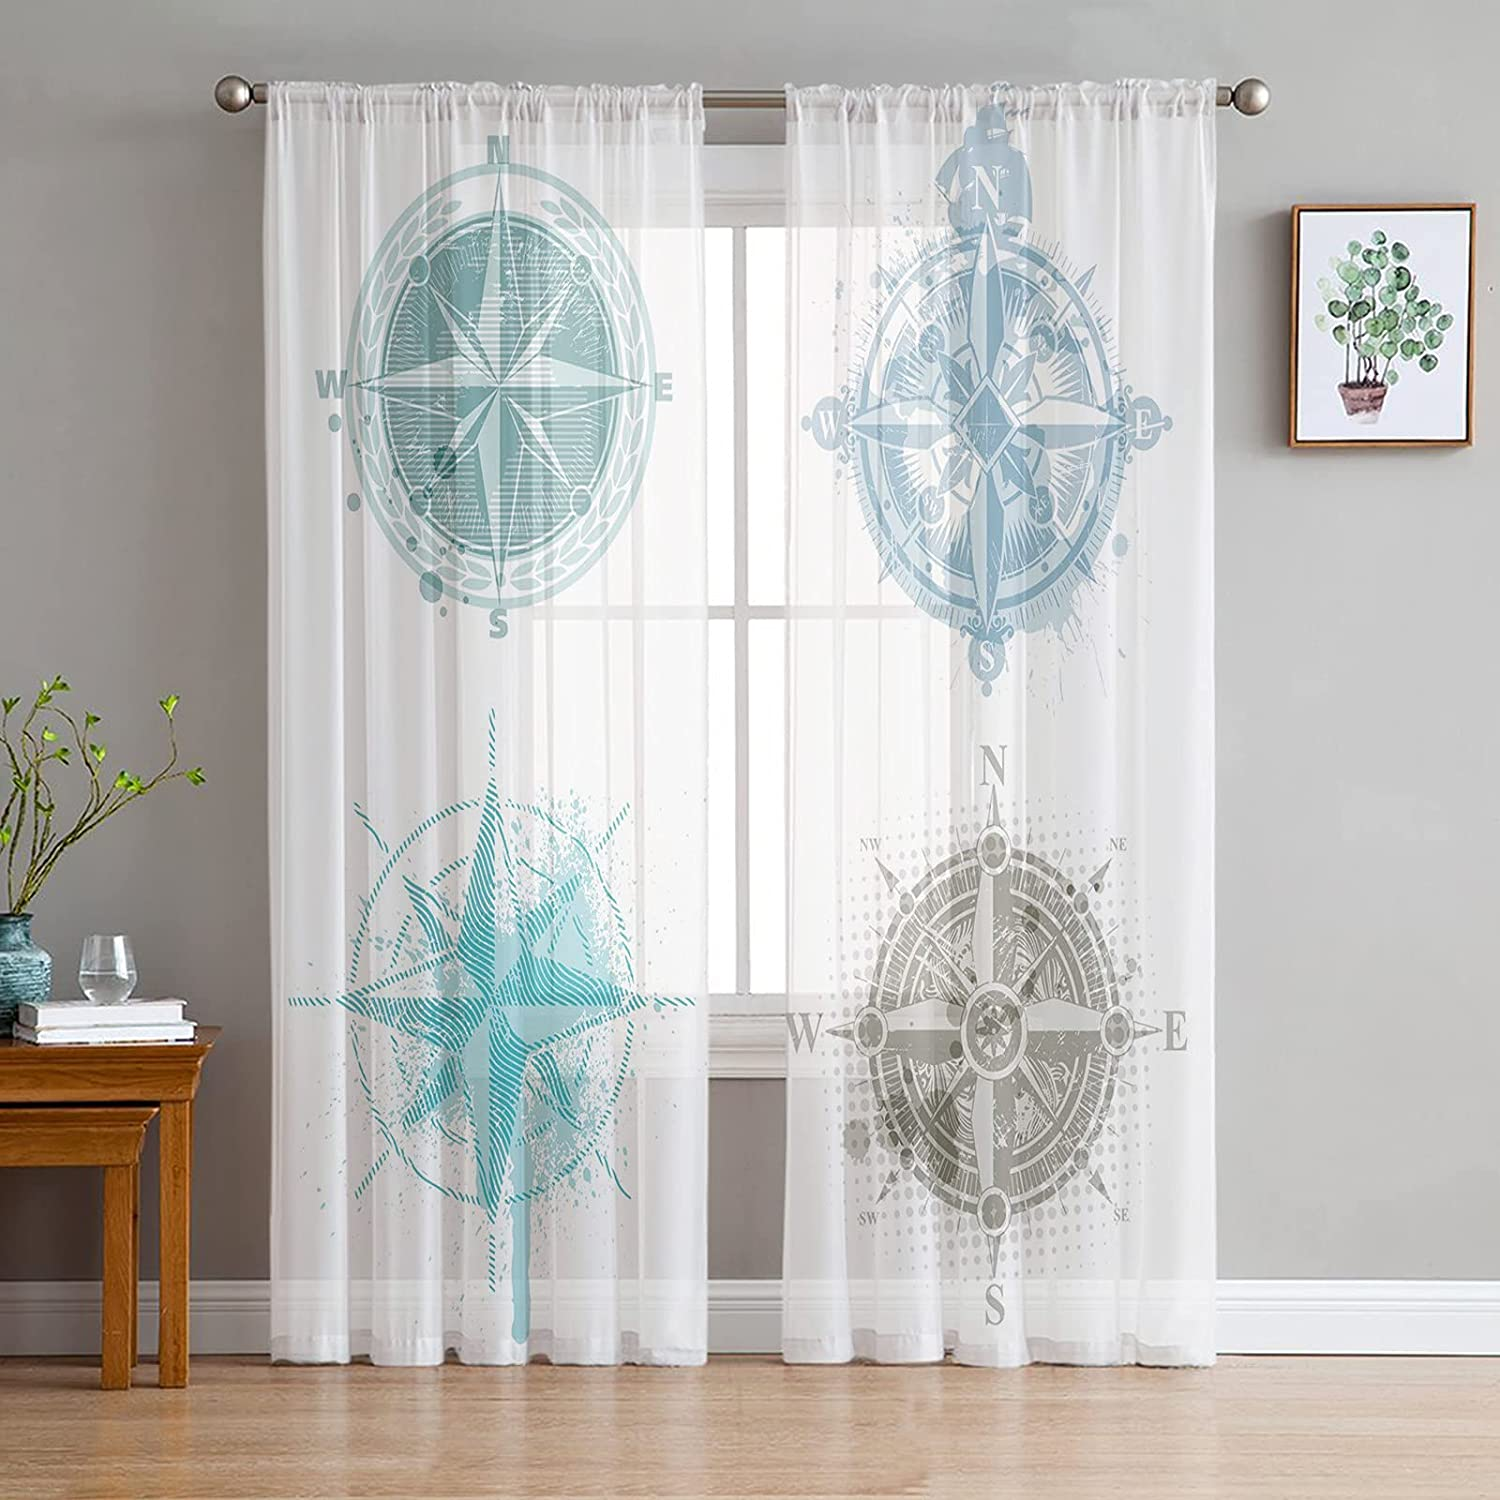 Printed House Sheer Curtains Panels Voile Pocket Semi 春の新作シューズ満載 Rod 上質